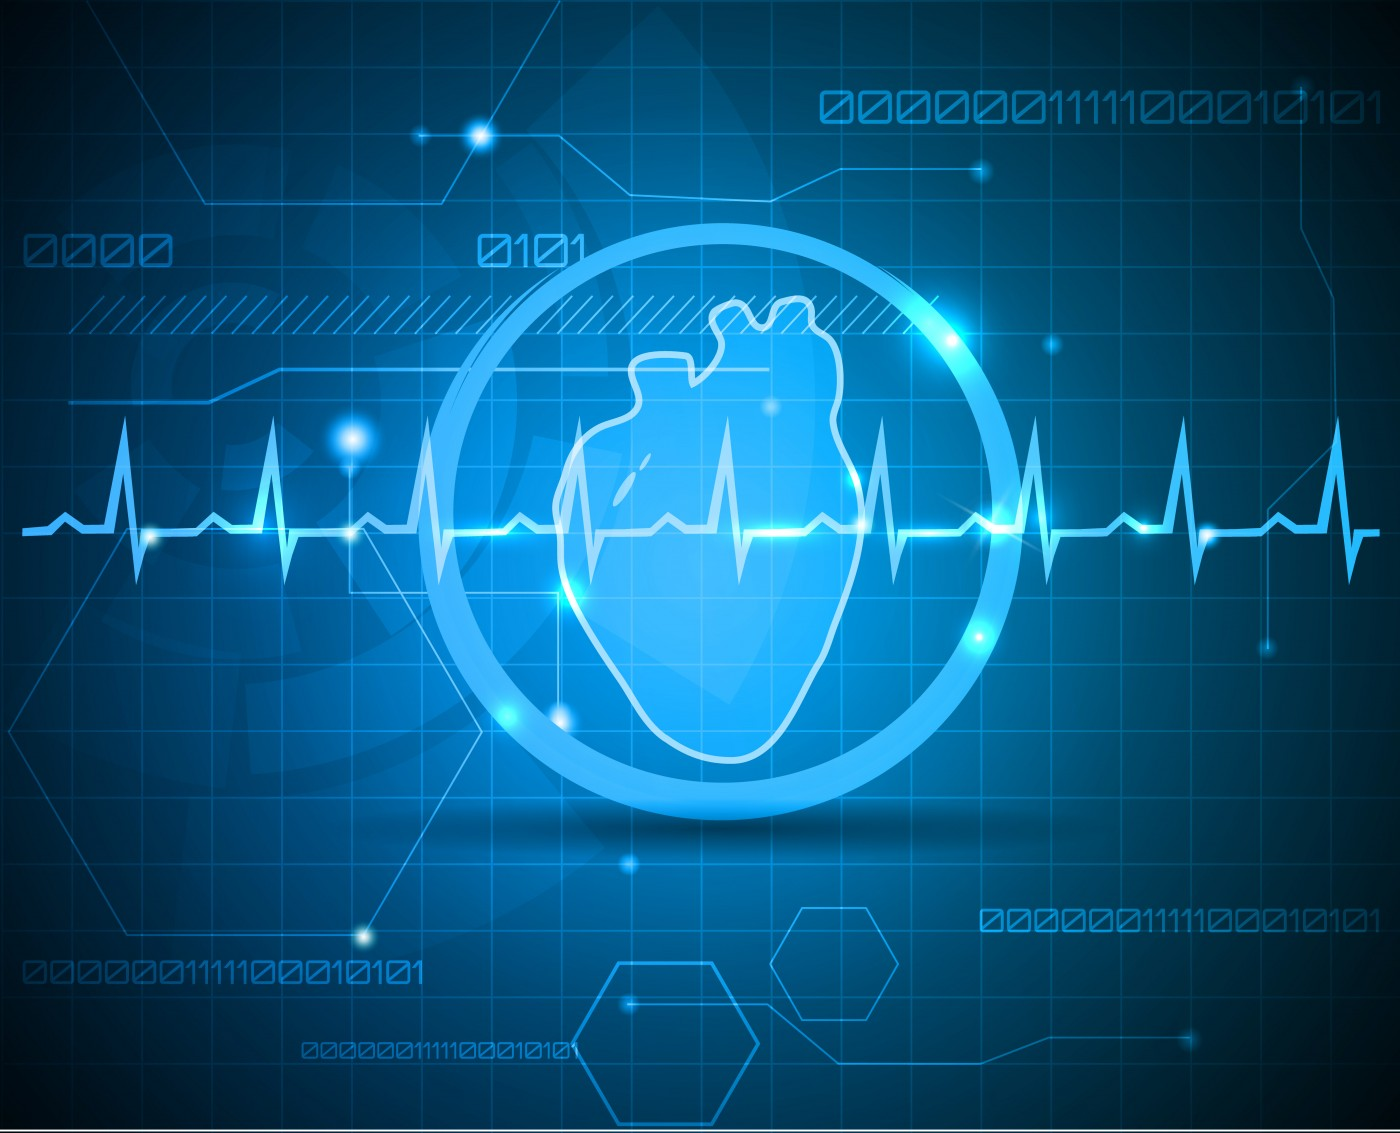 Heart Failure Treatment Sees Future in Electronic Monitoring Devices